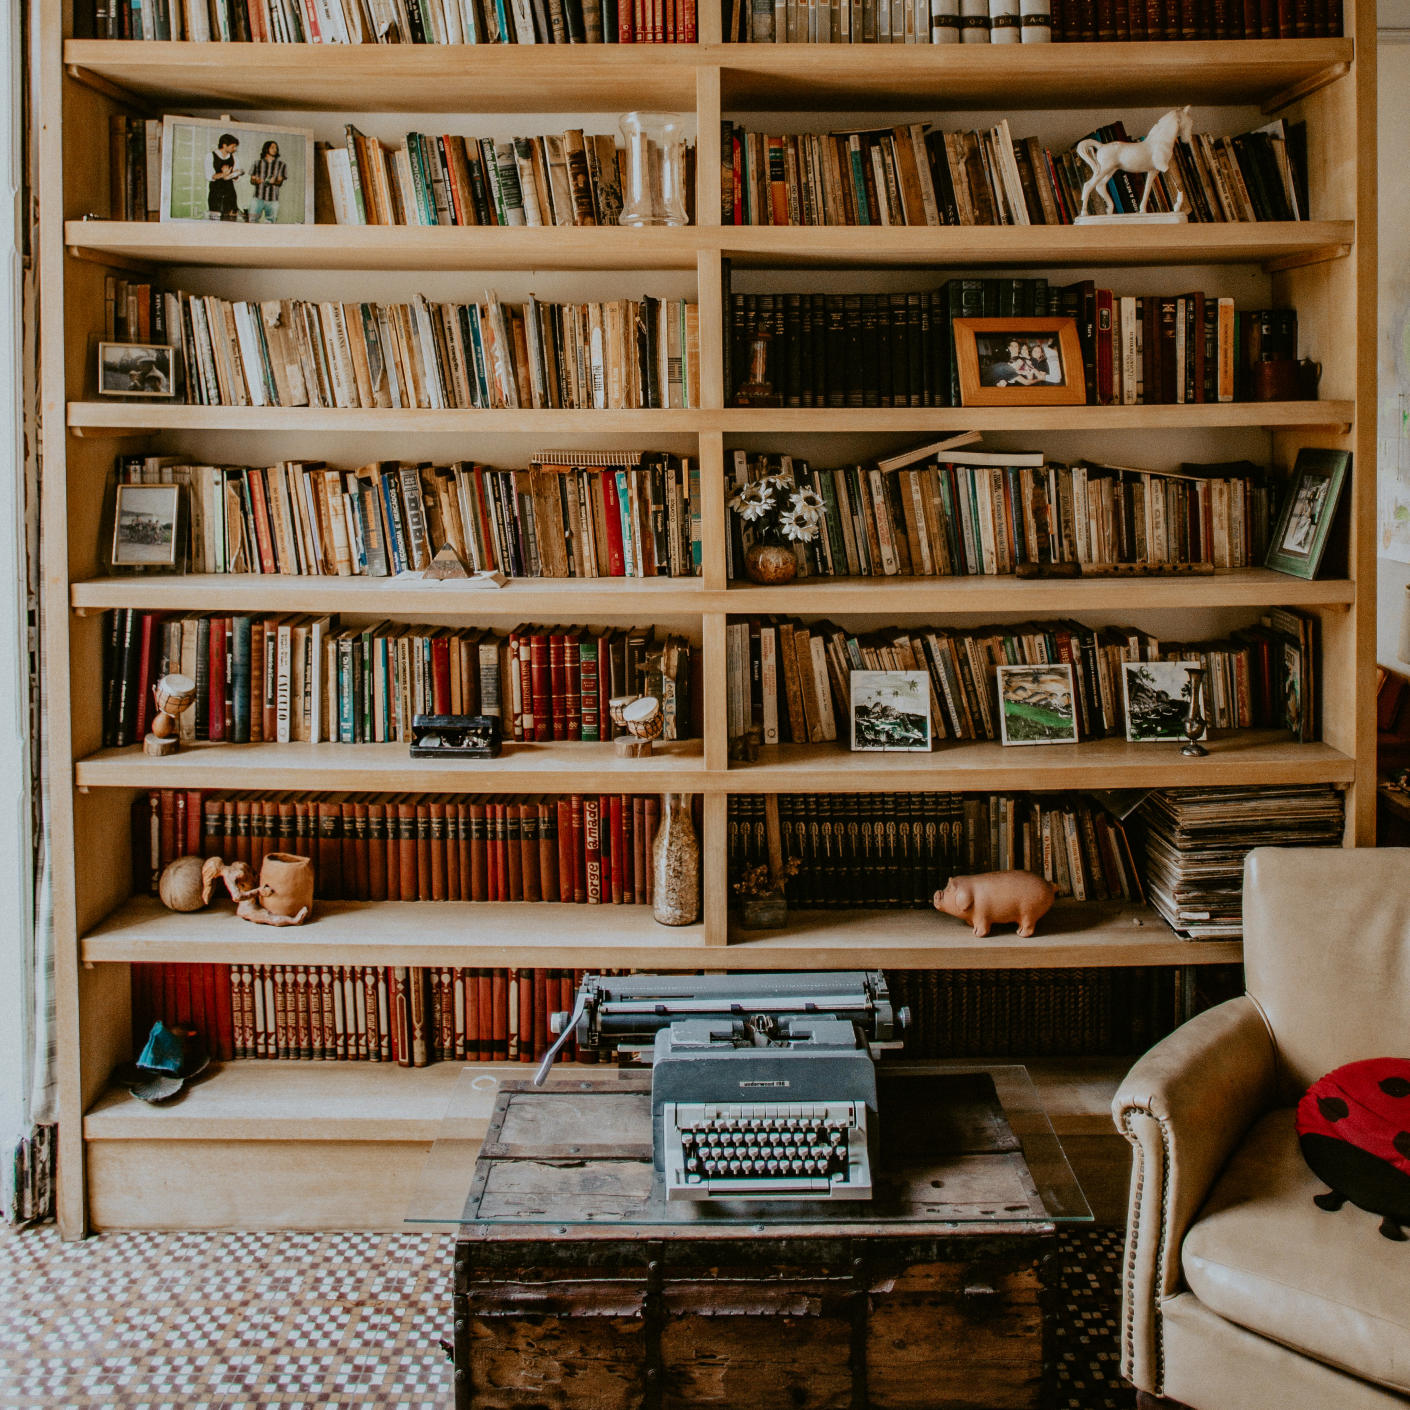 A double shelf with books and picture frames, with a couch and table with a typewriter in front of it.